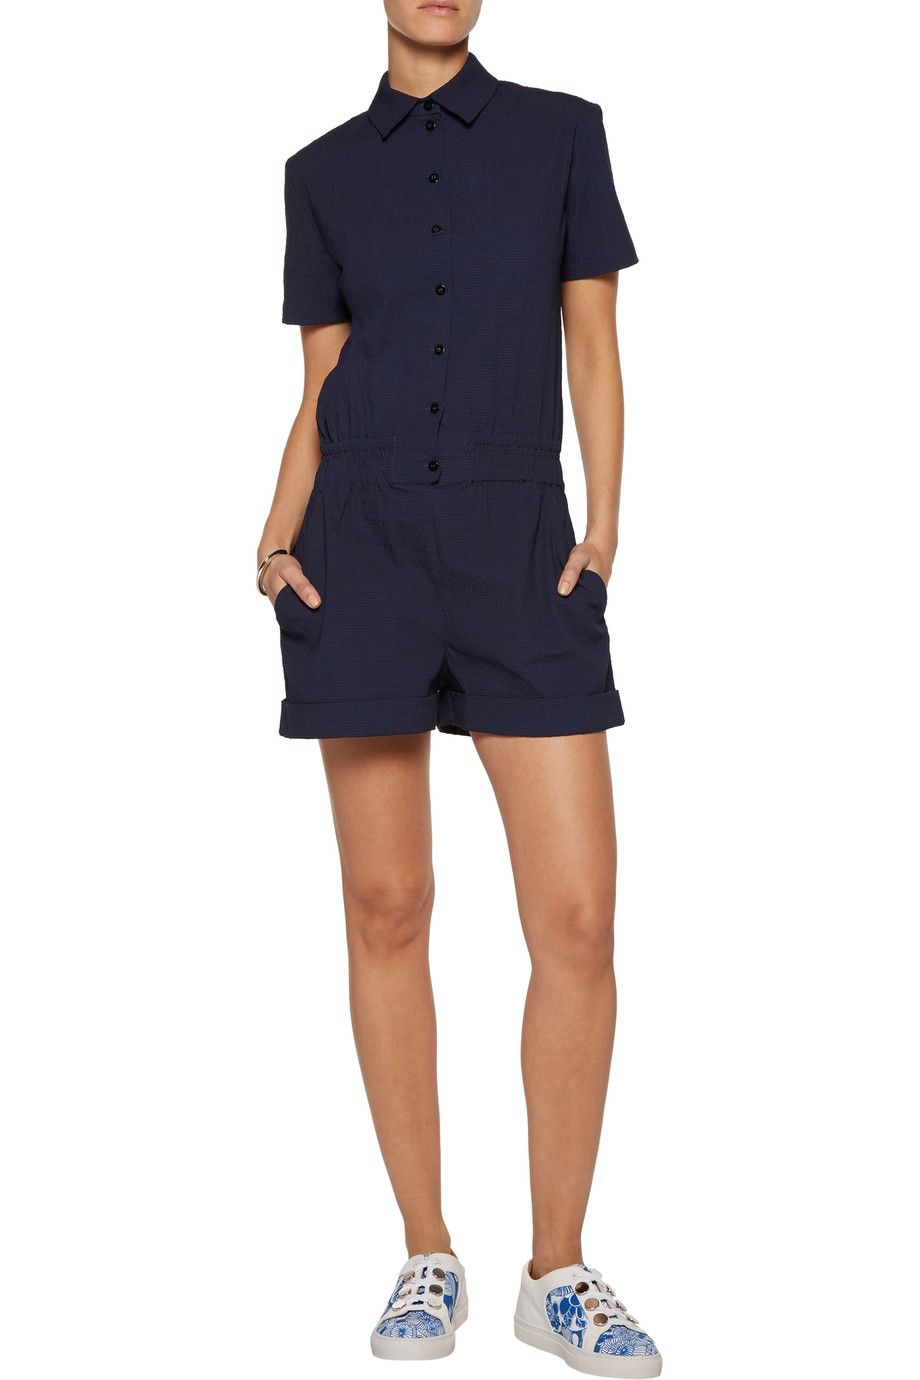 Carven Woman Cotton-blend Seersucker Playsuit Midnight Blue Size 42 Carven Real Cheap Online w3zlbulmX9